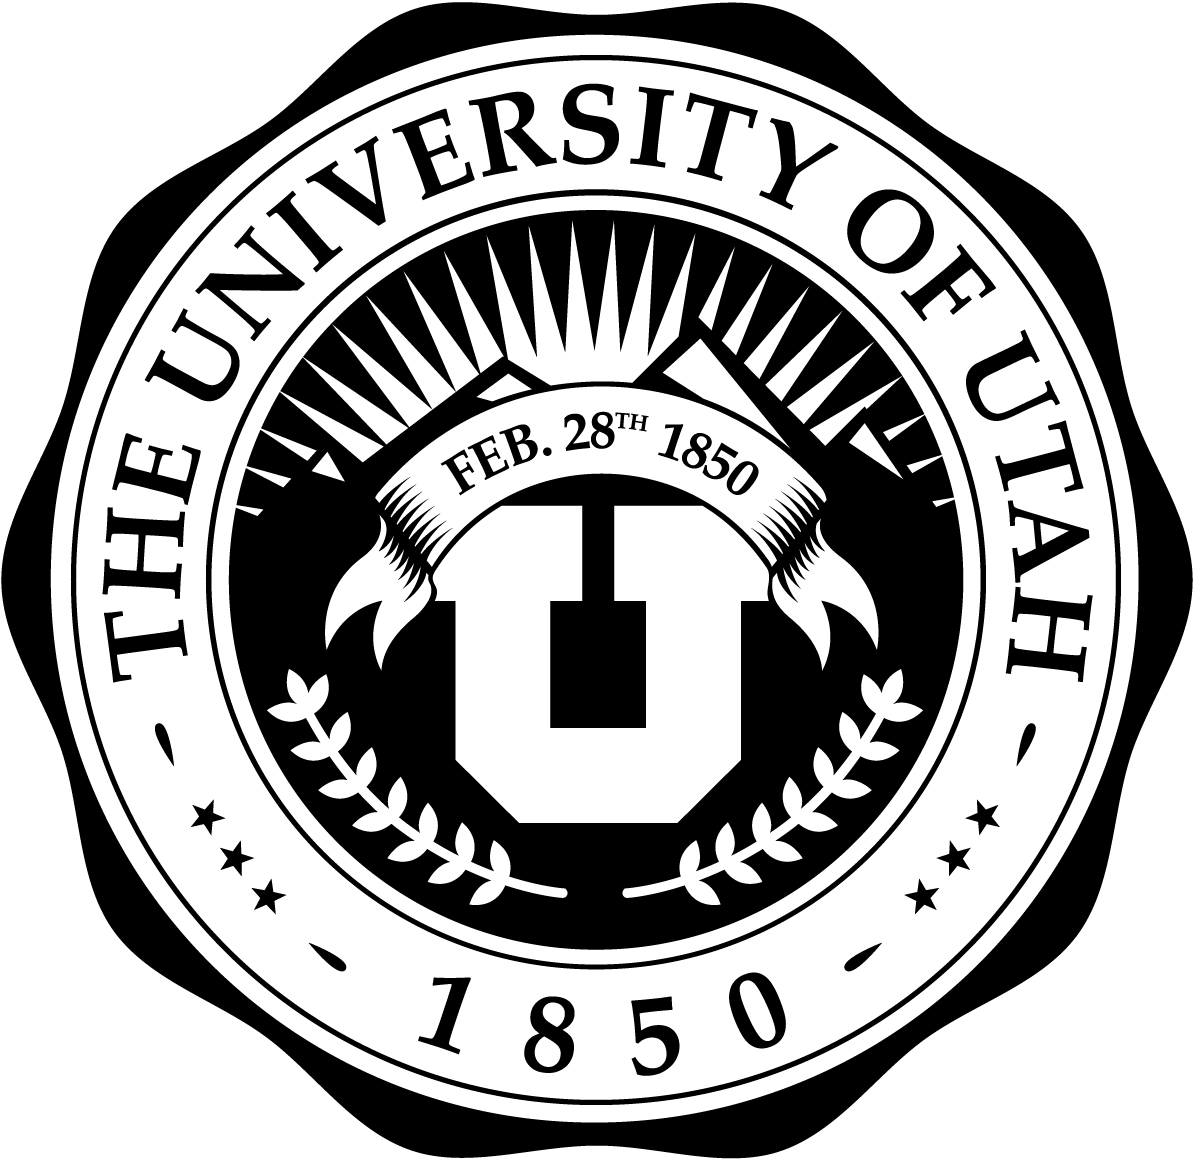 University Of Utah « Logos & Brands Directory. Hollister Ticker Symbol Social Media Platform. Invisalign Cost Dallas Mold Removal Franchise. State Farm Insurance Rochester Mn. Prescription Strength Cough Syrup. Qualities Needed To Be A Social Worker. High Blood Pressure And Birth Control. Cabinet Manufacturing Software. Cabriolet Convertible For Sale